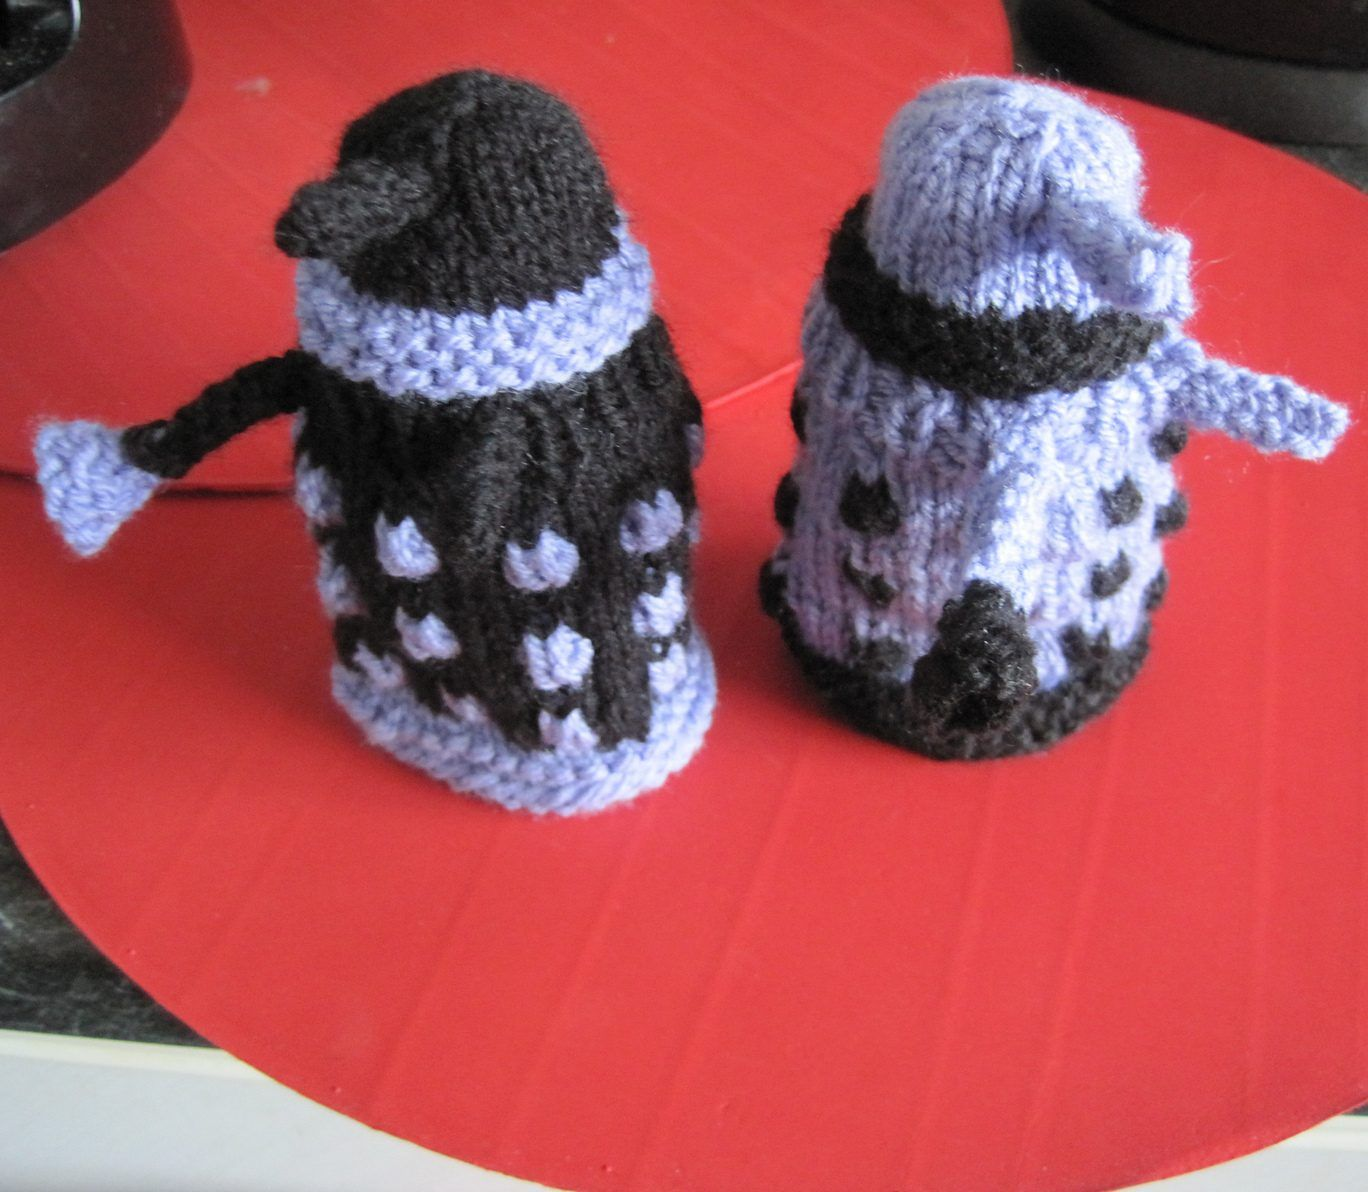 Teeny Toy Knitting Patterns | Dalek, Knitting patterns and Cosy